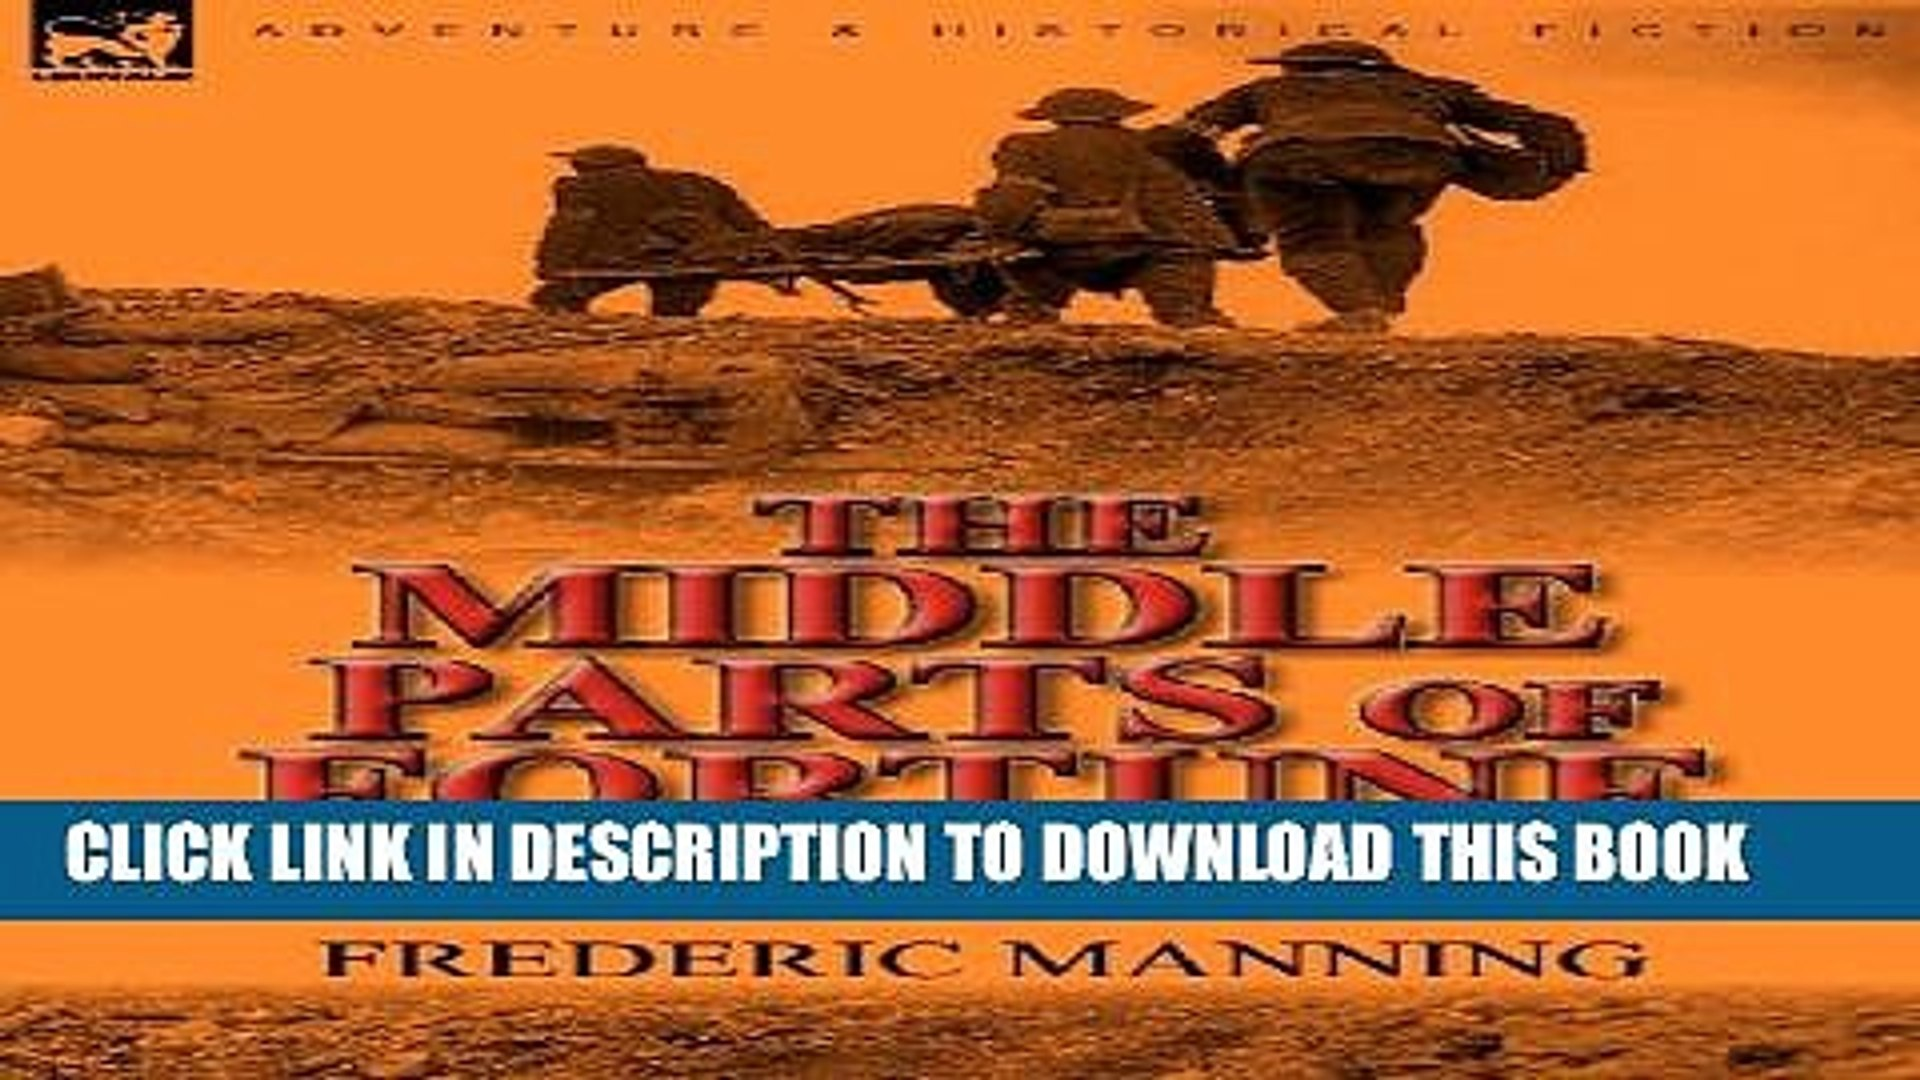 [PDF] The Middle Parts of Fortune: Somme and Ancre, 1916 Popular Online